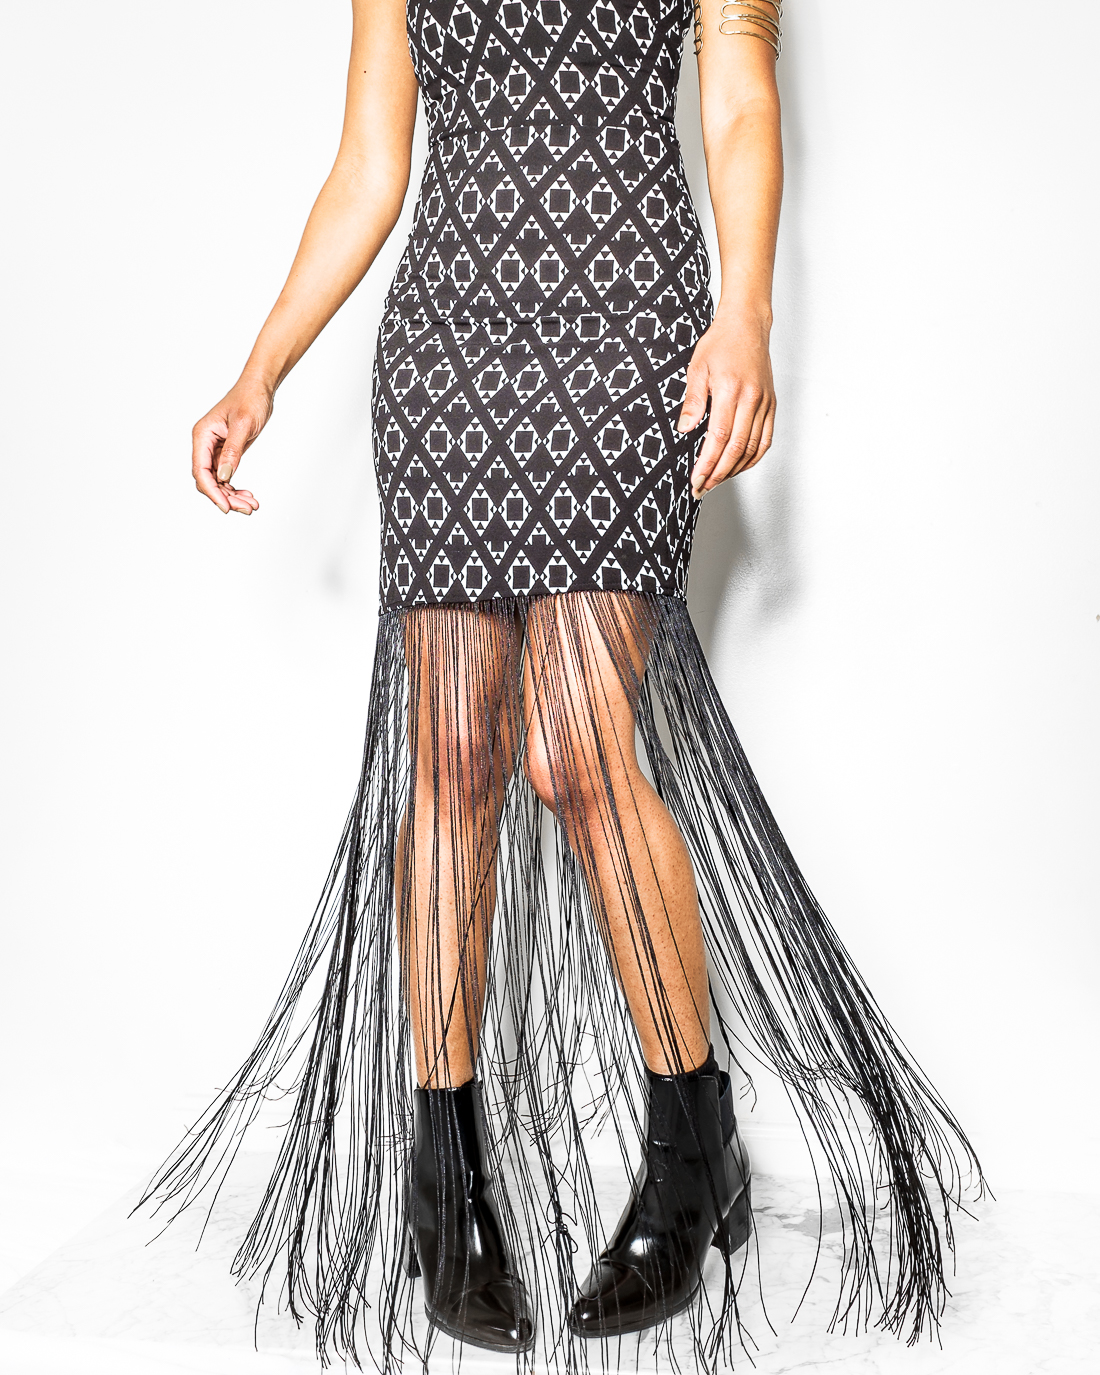 Fringed Dress